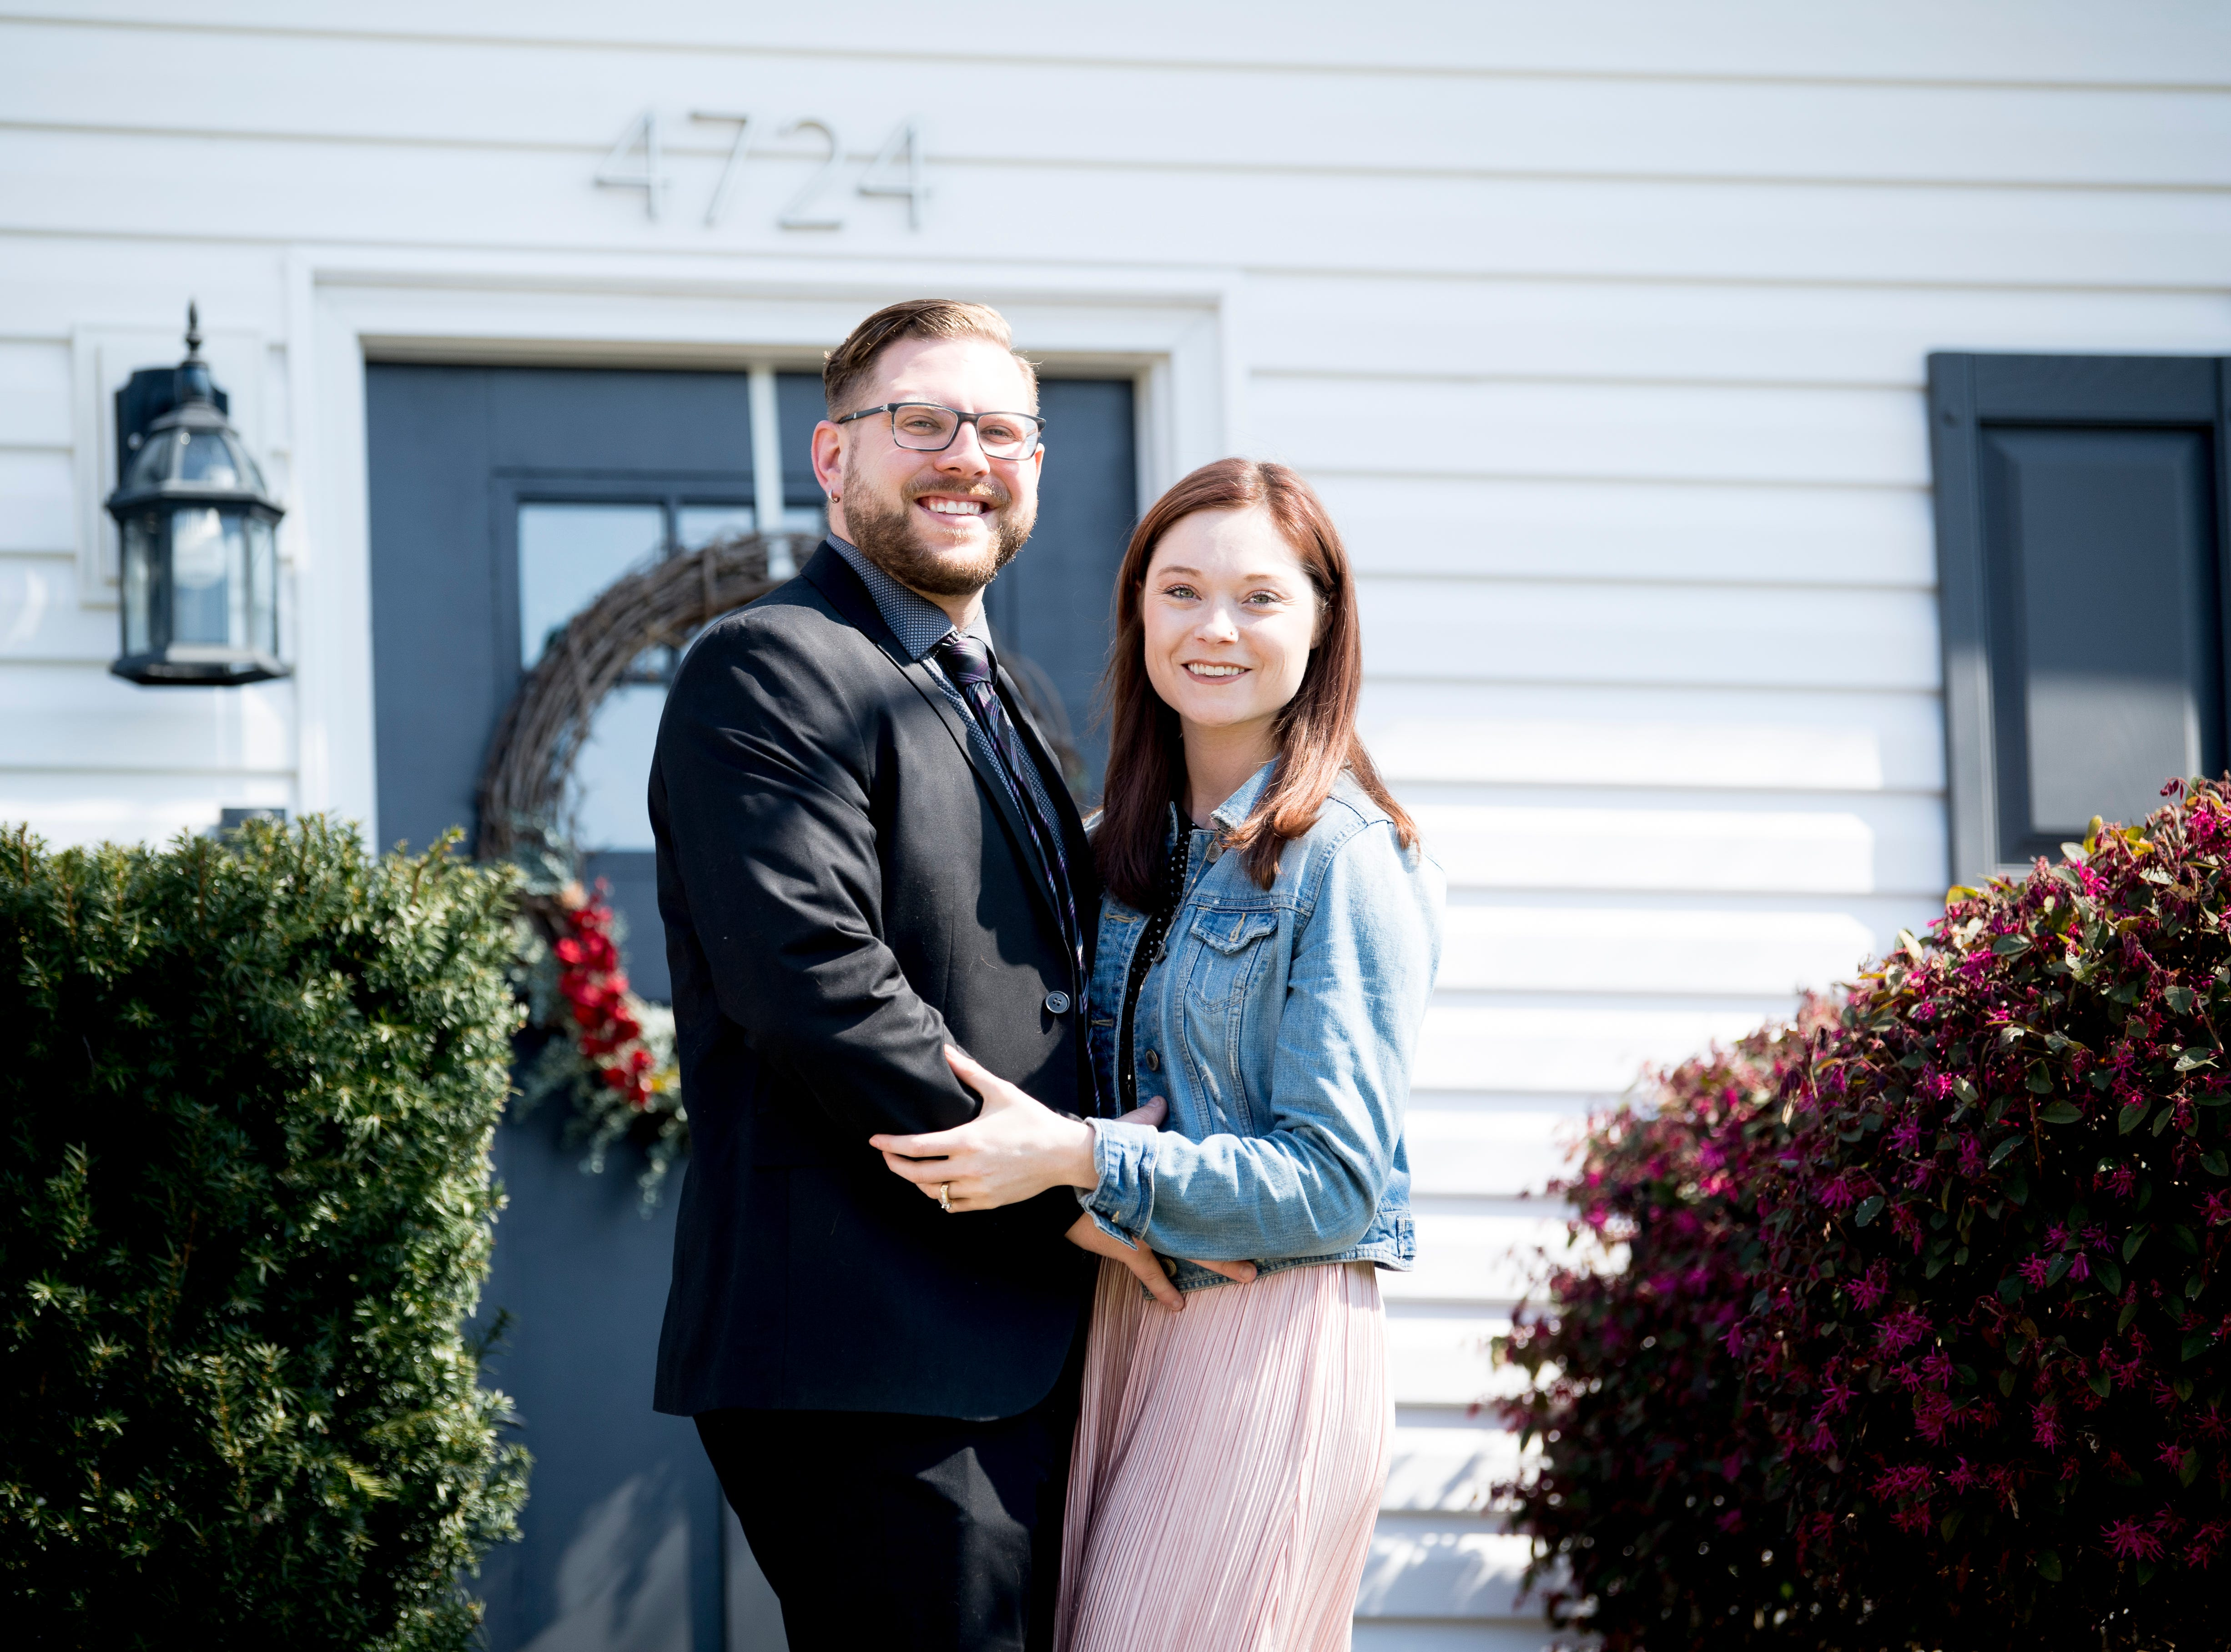 Austin Miller, 30, and his fiancé Trissa Gurney, 27, pose outside of their home off McKamey Road west of Knoxville, Tennessee on Wednesday, April 3, 2019. After months of house searching, the couple decided to move into their current home last December after making some small compromises like being further away from downtown.